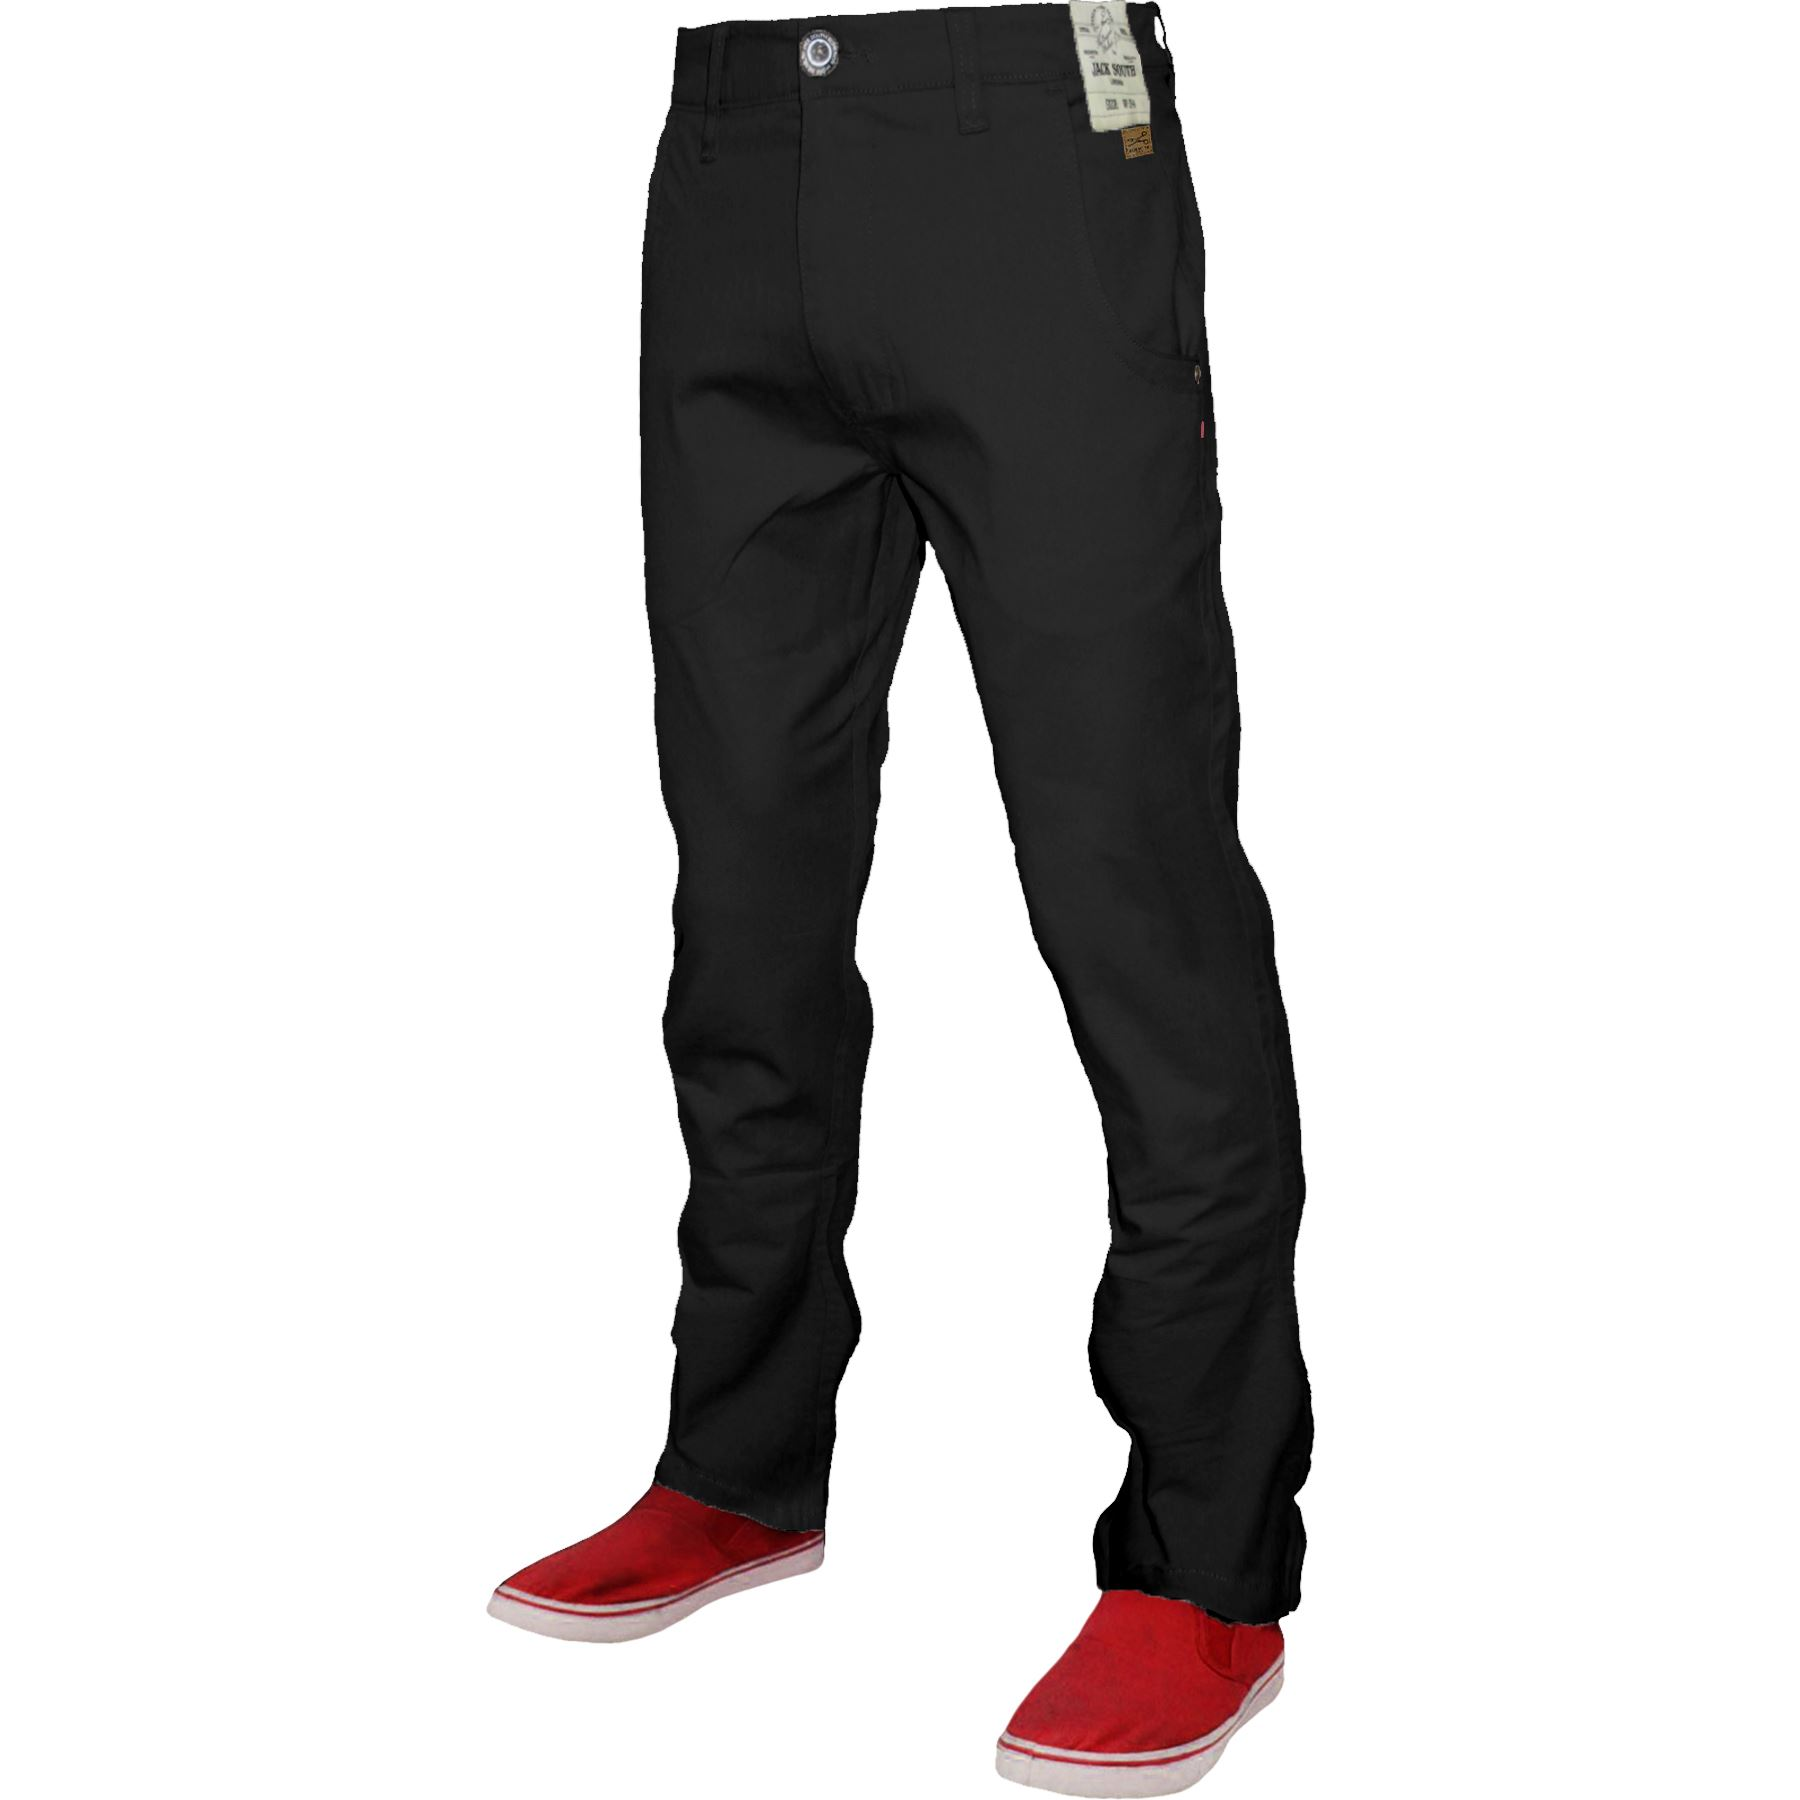 Mens-Chino-Classic-Regular-Fit-Trouser-Casual-Stretch-Spandex-Pants-Size-32-40 thumbnail 3